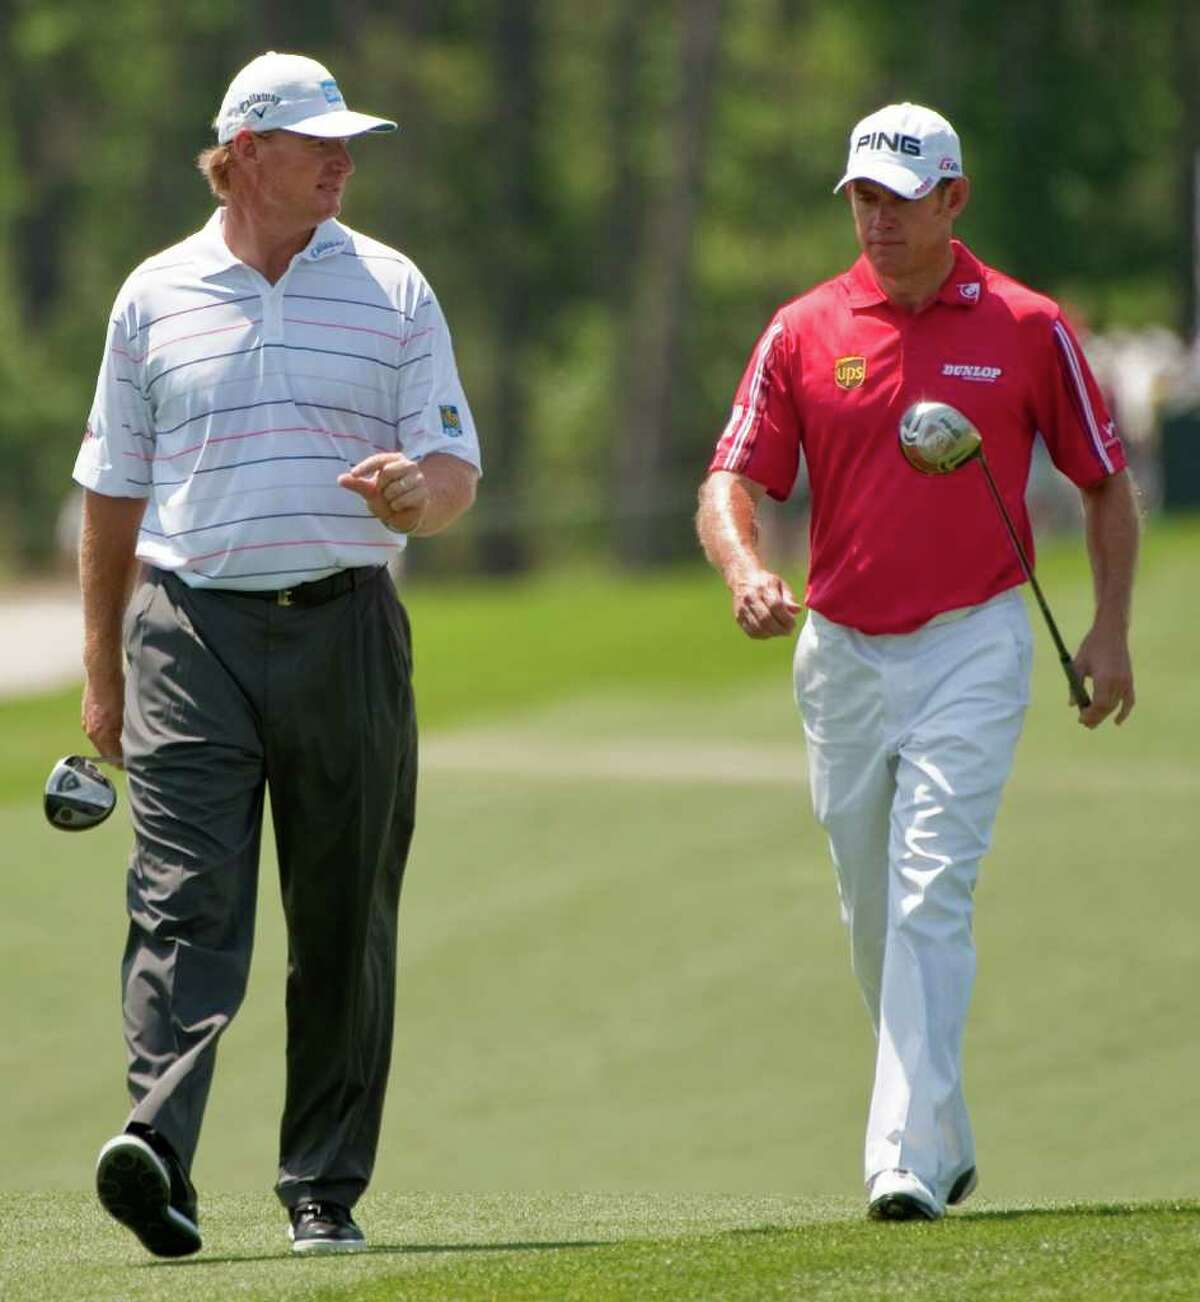 Ernie Els, left, of South Africa, and Lee Westwood, right, of England, walk up the 8th hole during the final round of the Houston Open golf tournament, Sunday, April 1, 2012, in Humble.